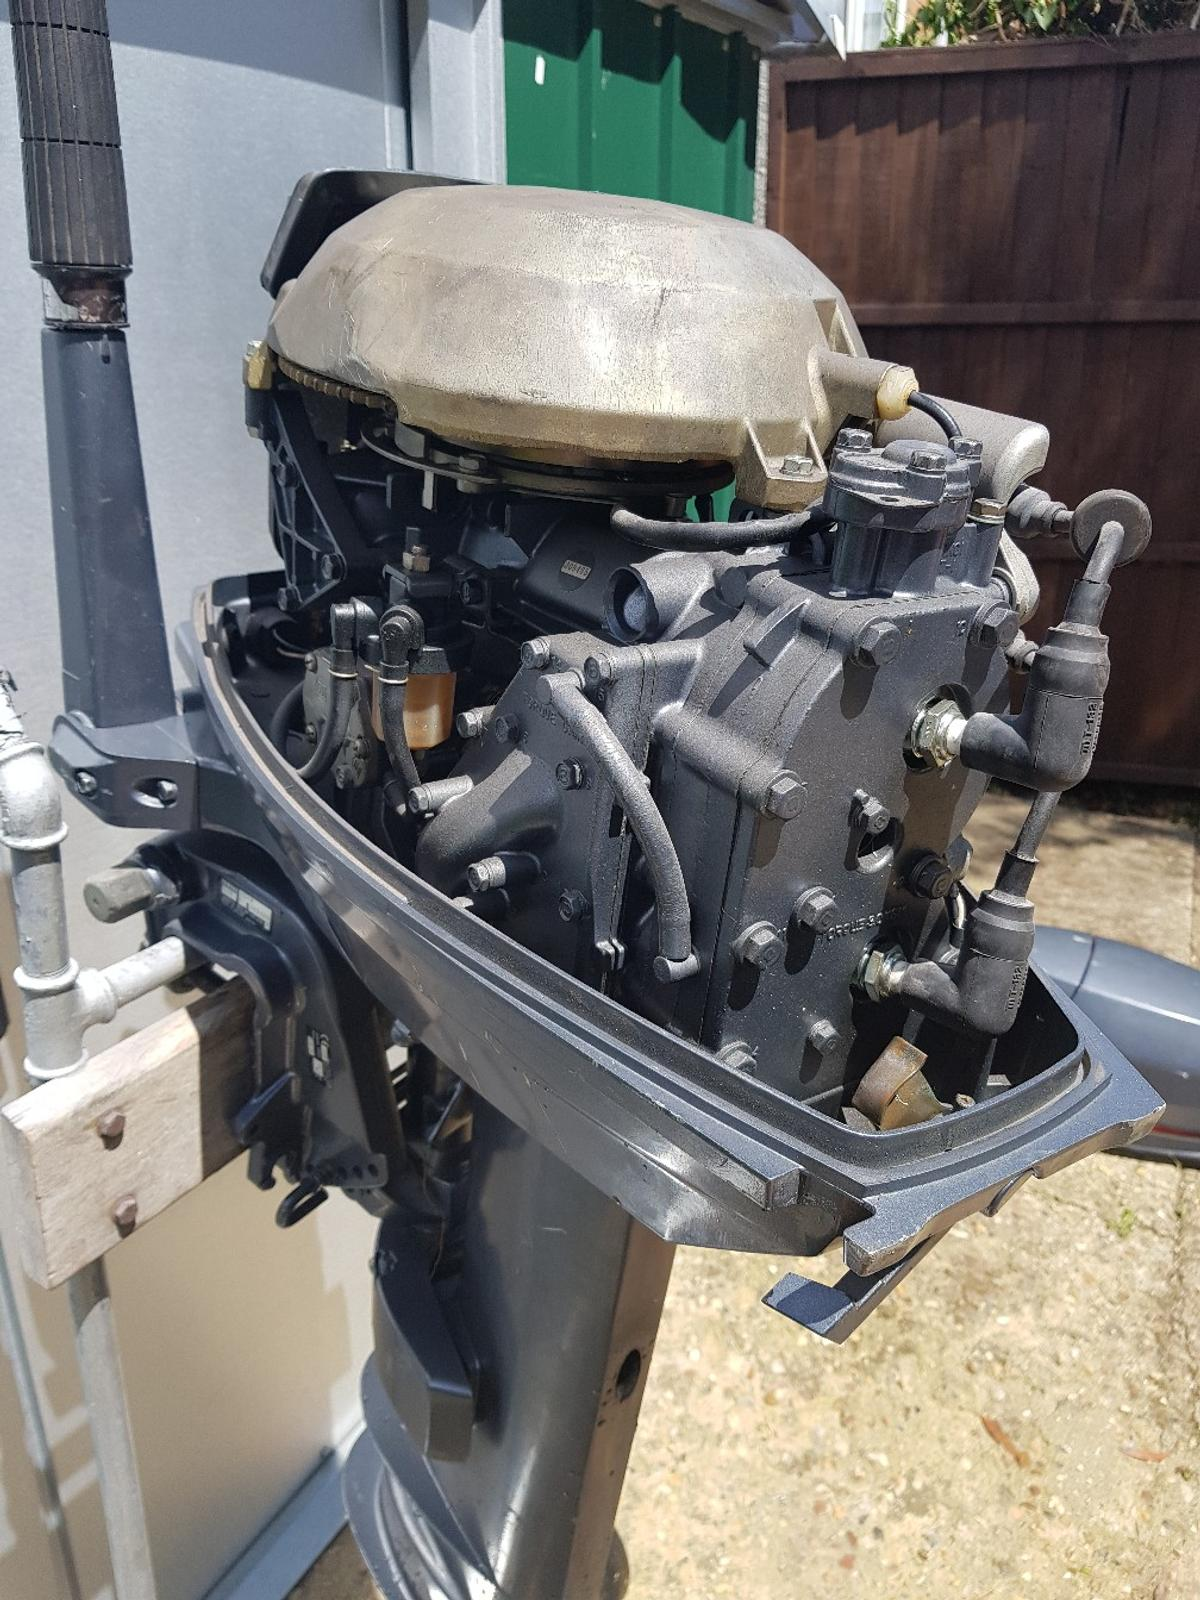 Yamaha 25hp outboard in London for £850 00 for sale - Shpock